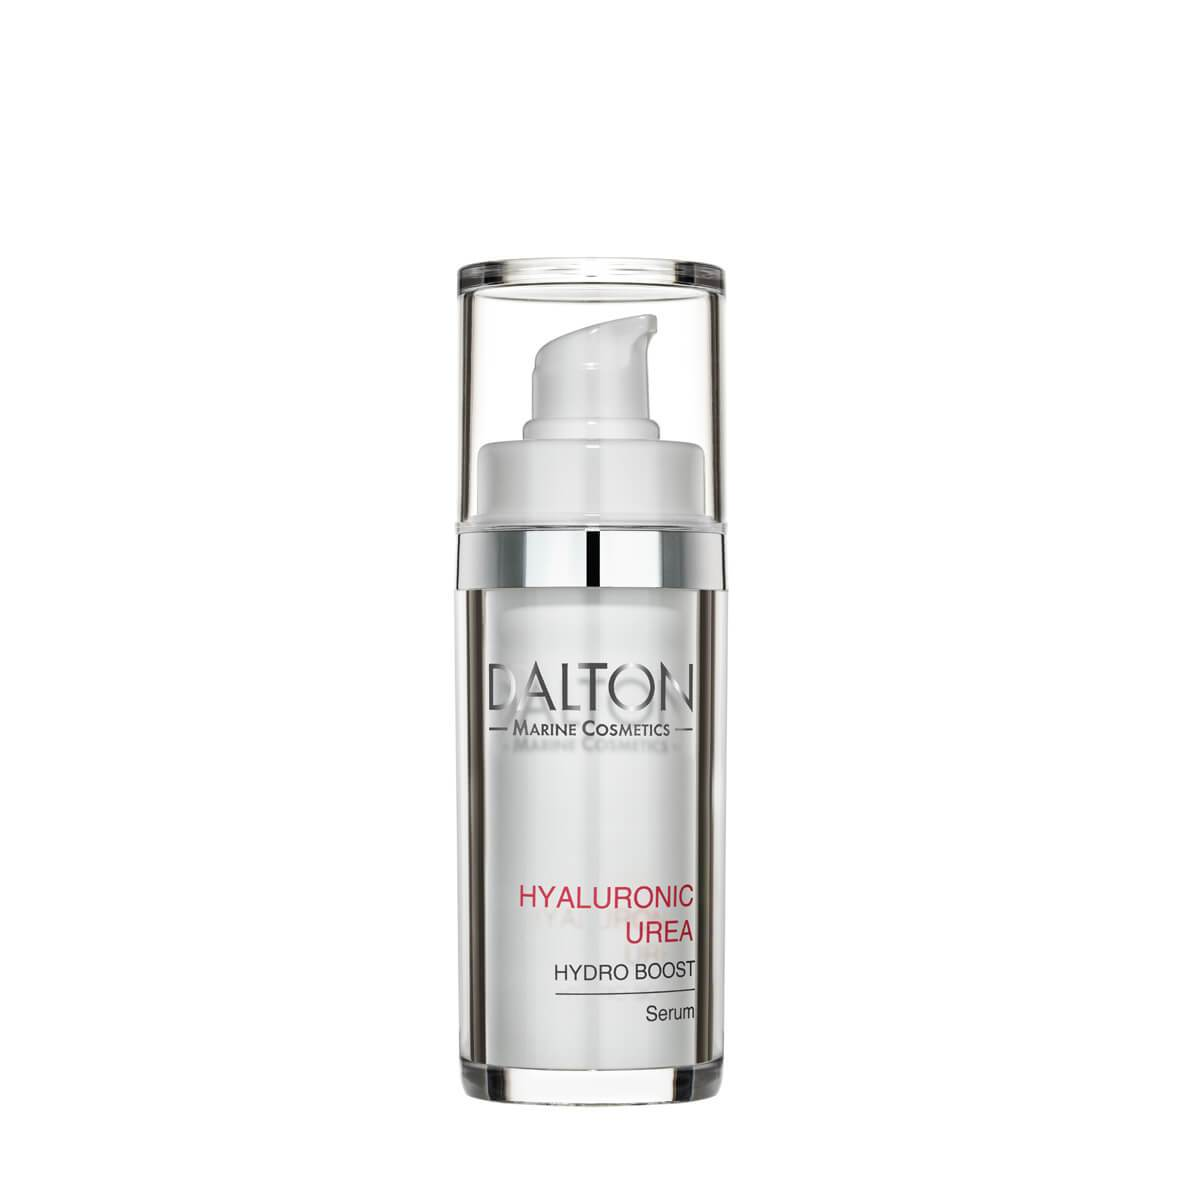 Ser, Hyaluronic Urea Serum 30 ml., Dalton Marine Cosmetics, Era Cosmetics